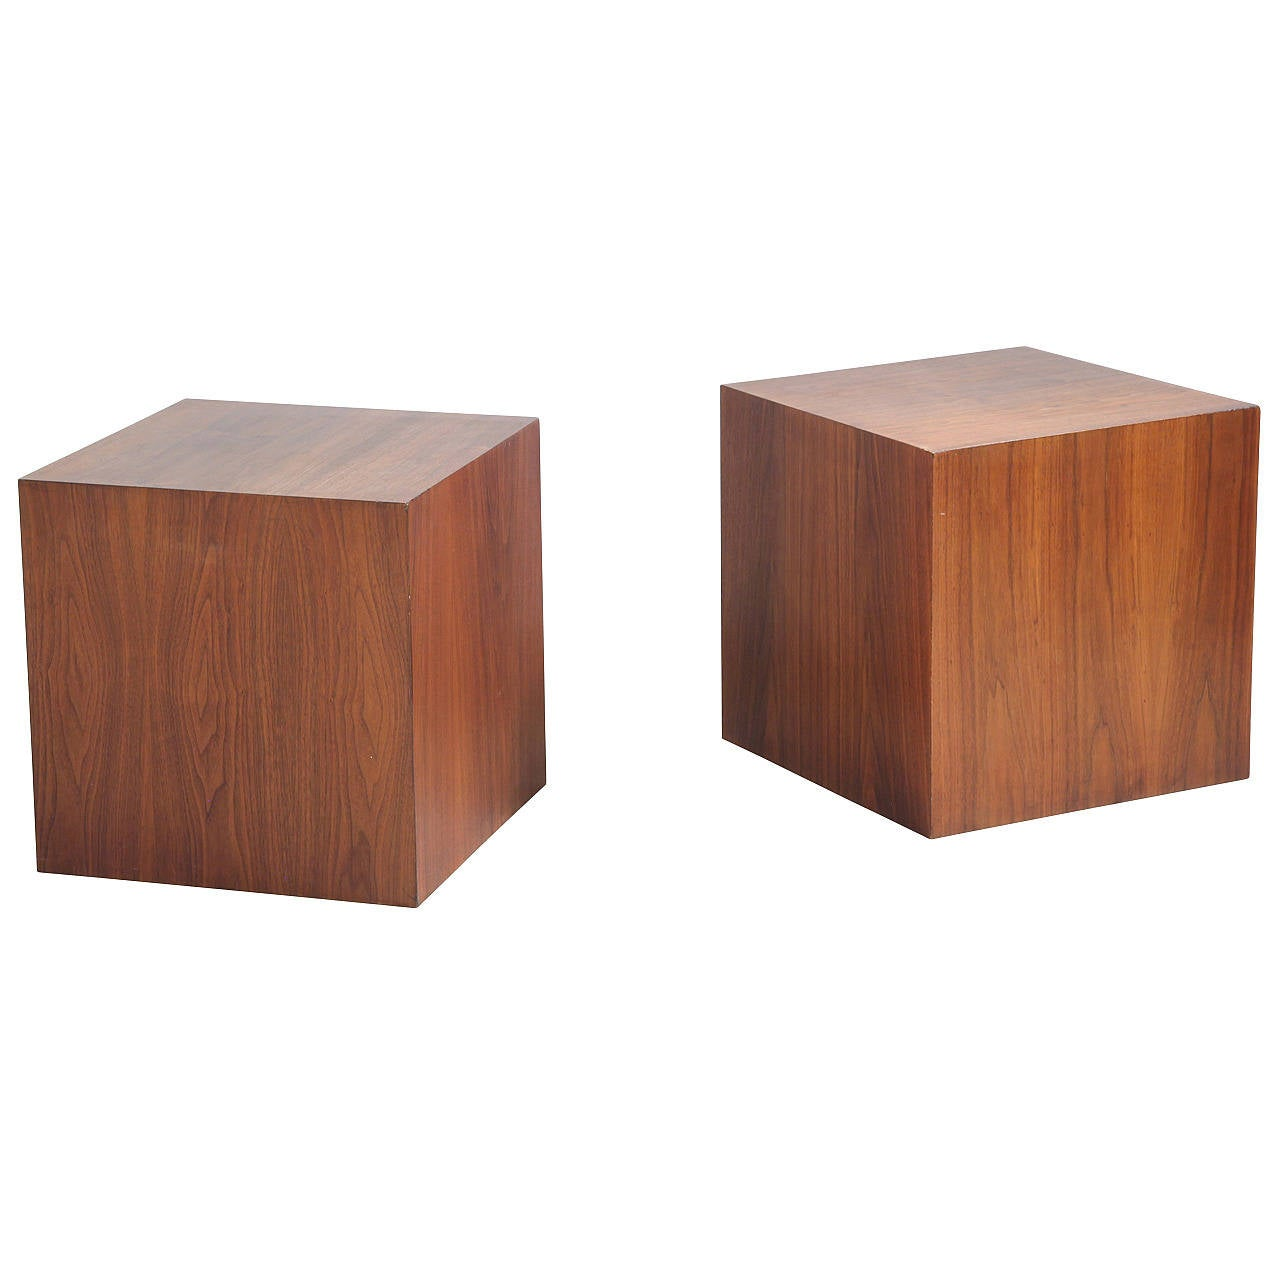 Walnut Cube Shaped Coffee Tables By Milo Baughman At 1stdibs